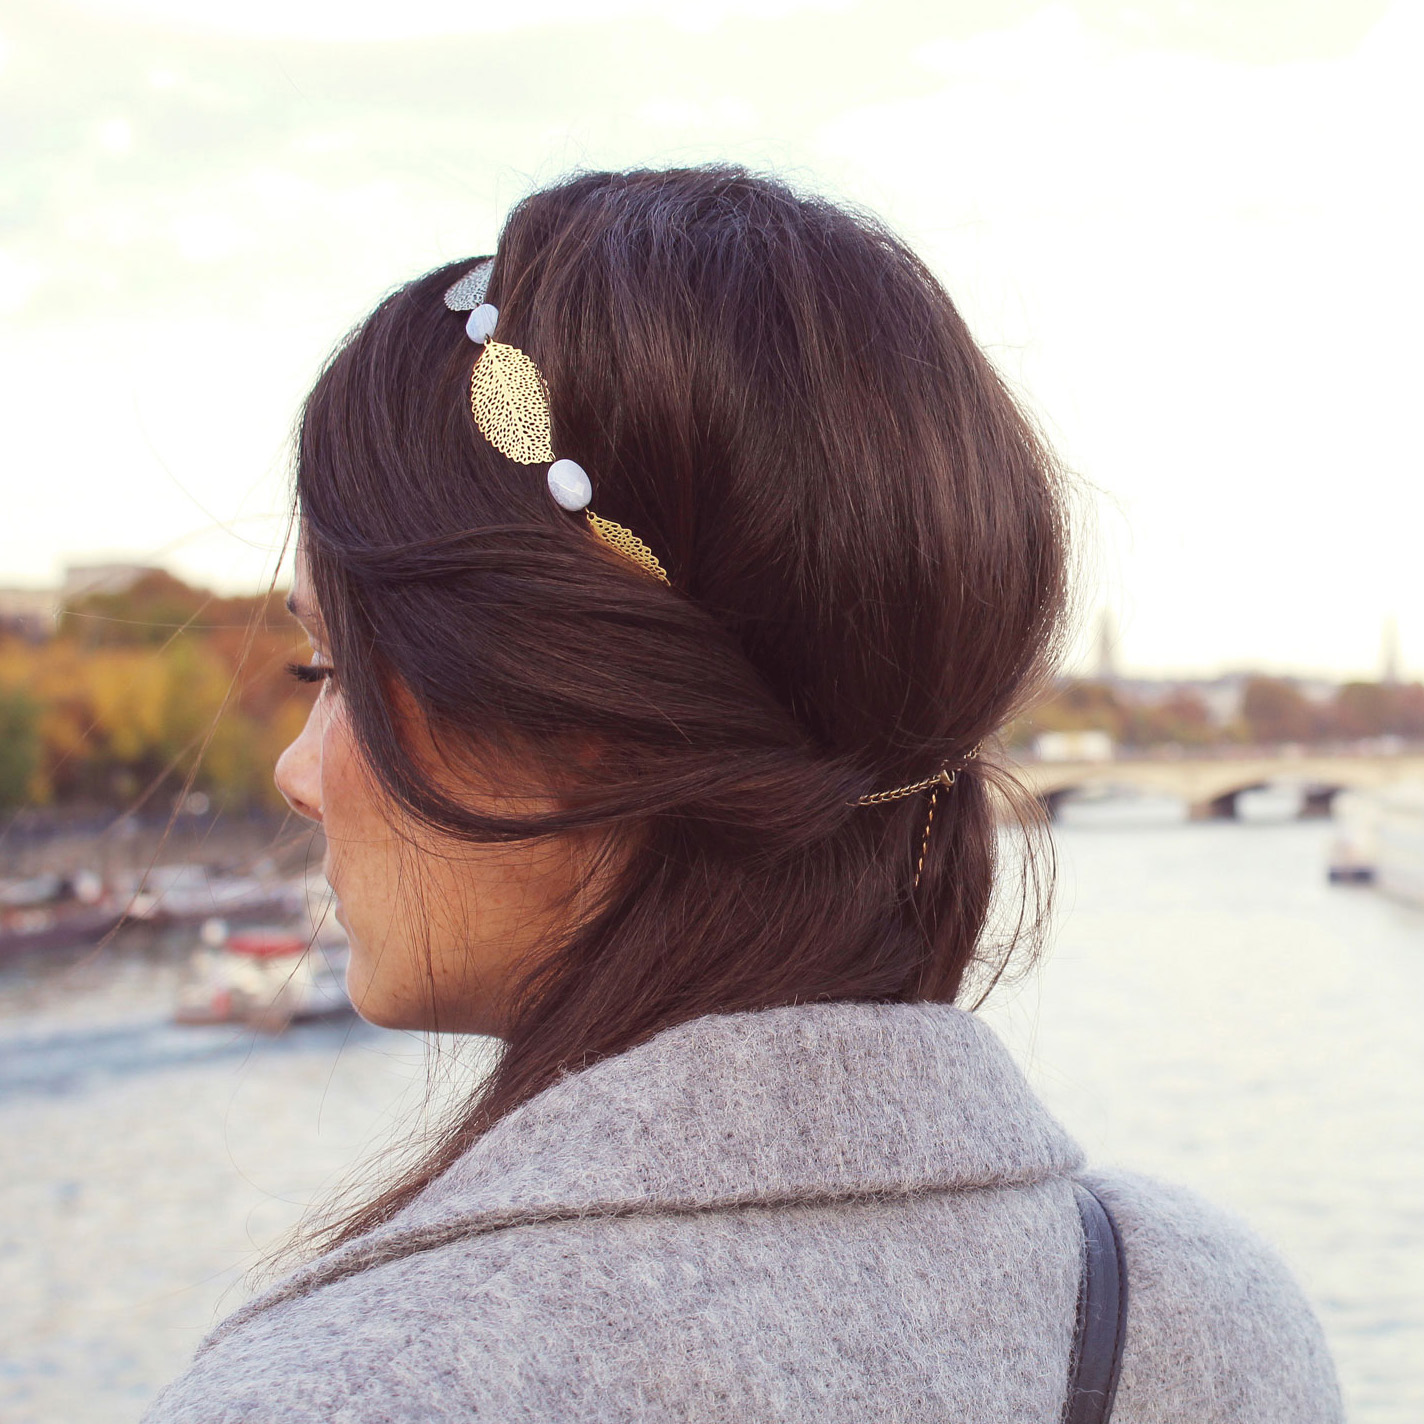 Coachella headband Pemberley Paris